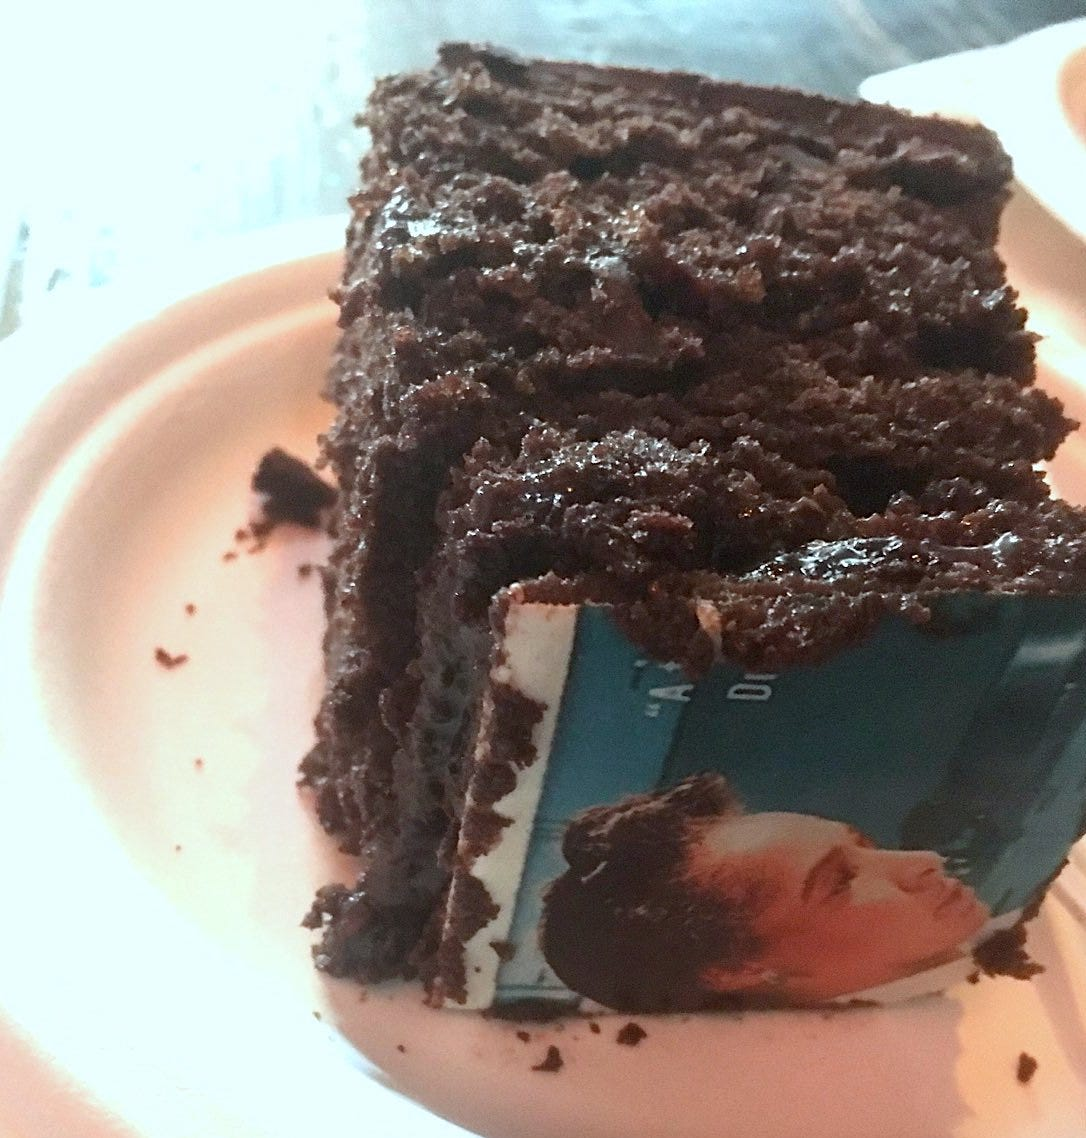 chocolate layer cake square with book cover image of Flemmie Kittrell on top